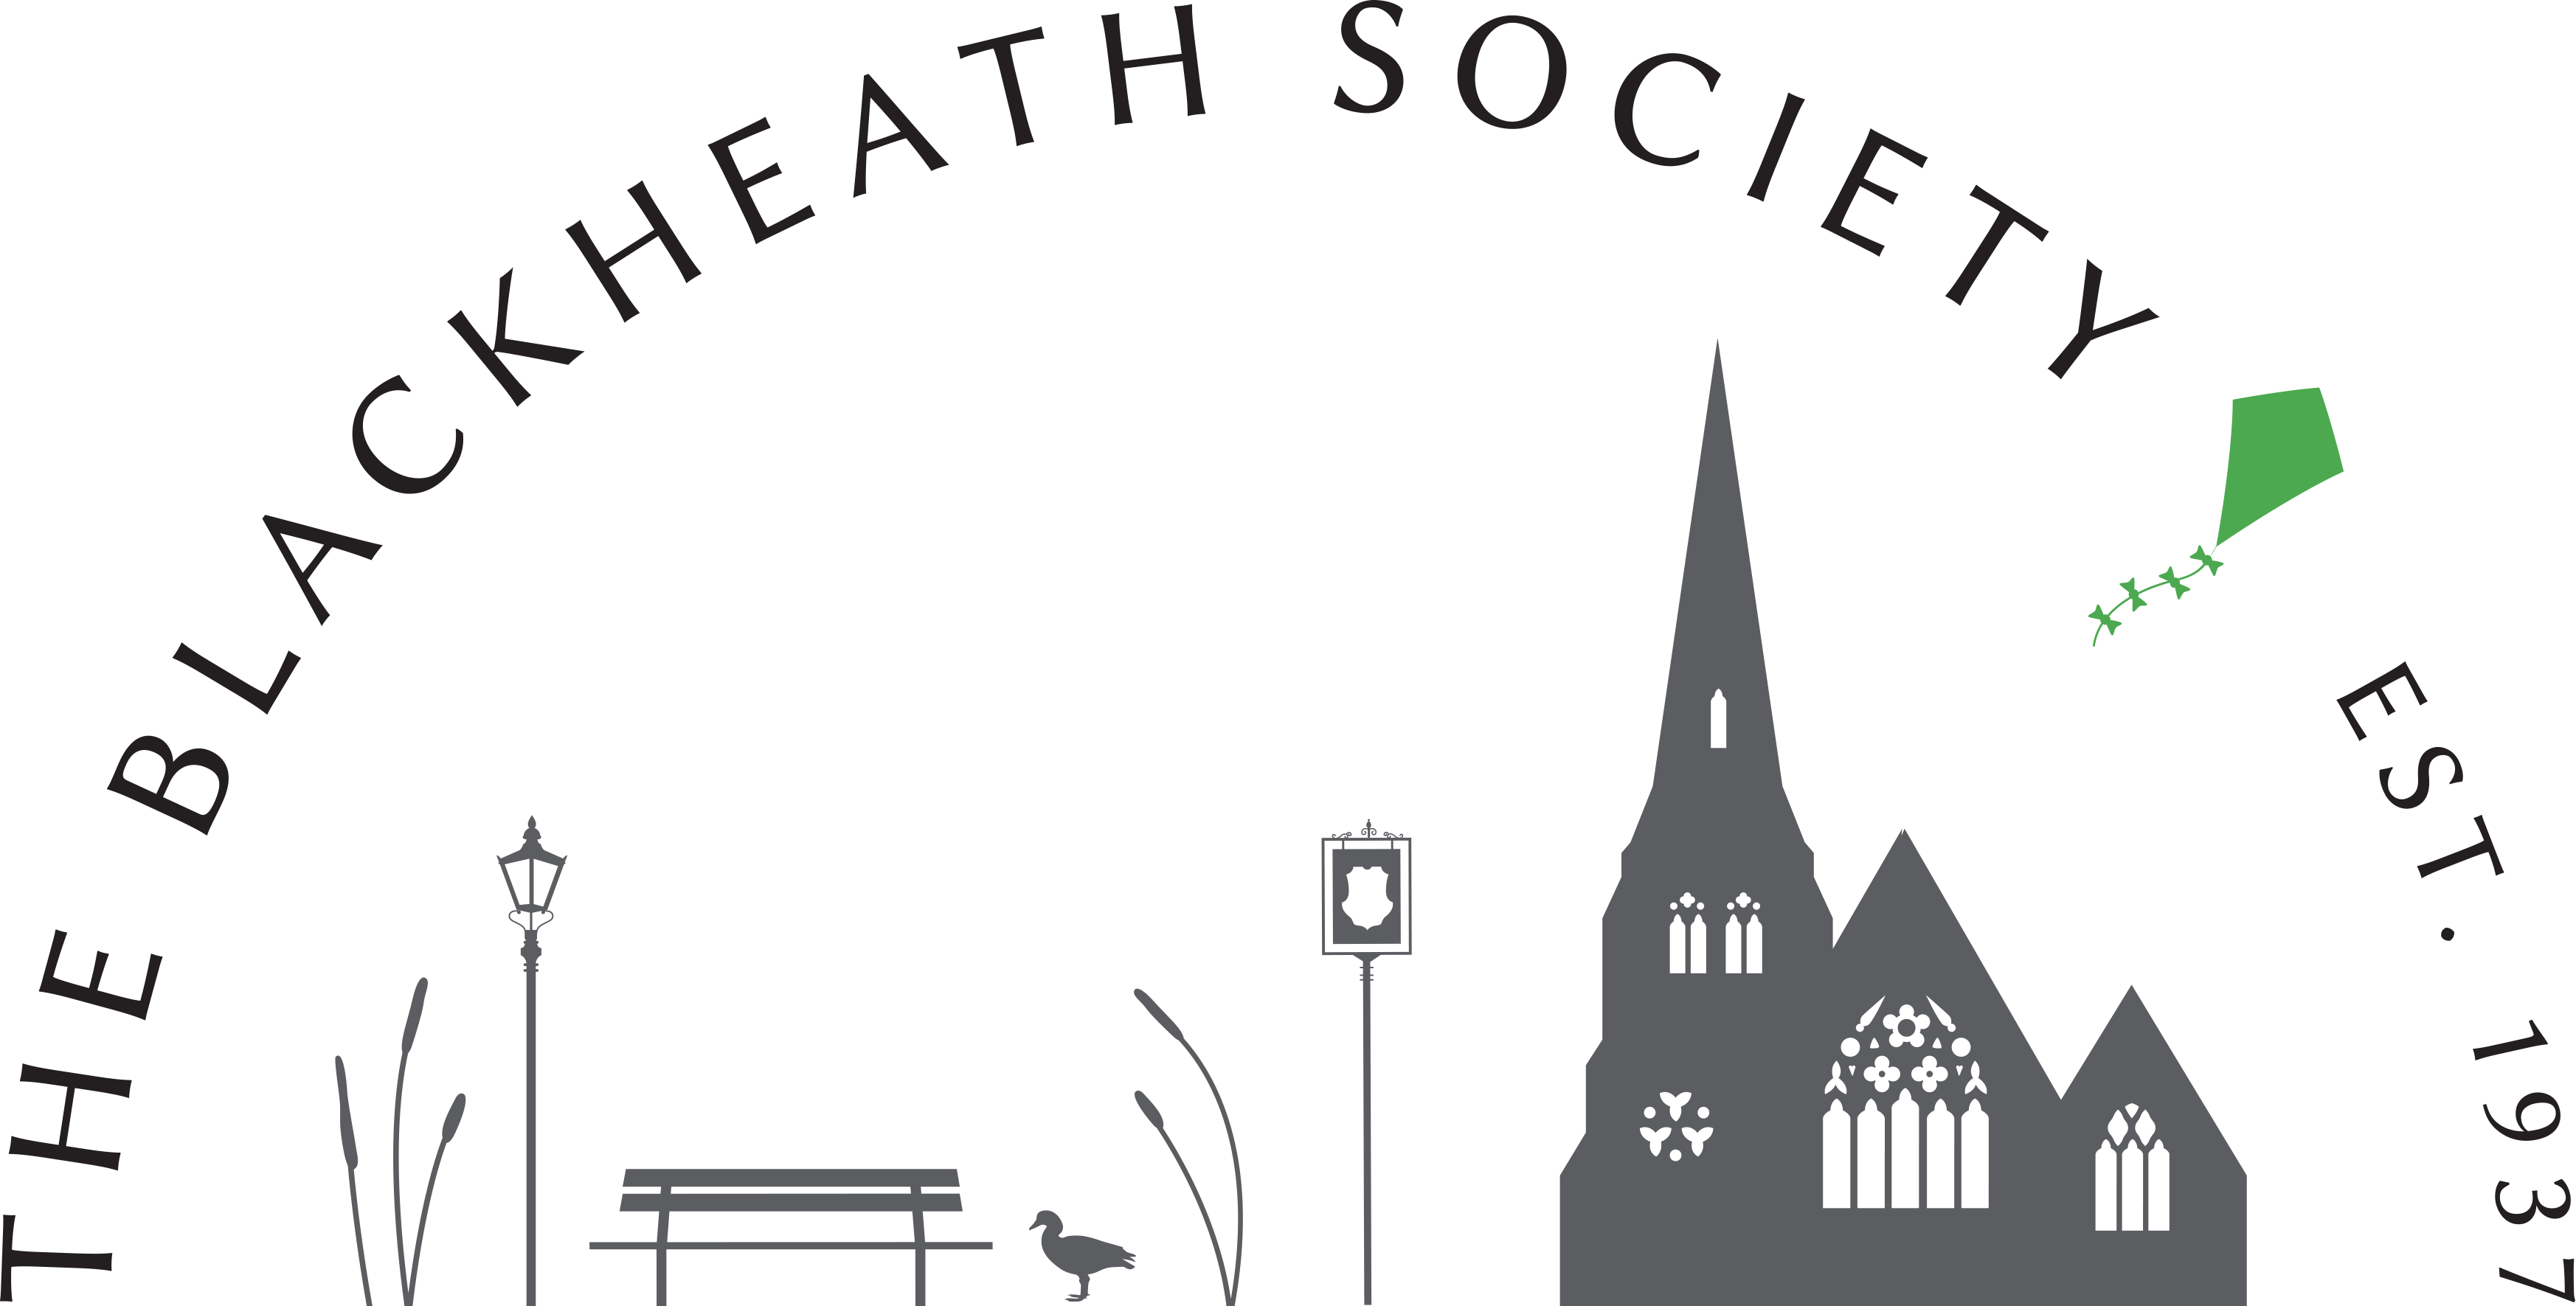 The Blackheath Society